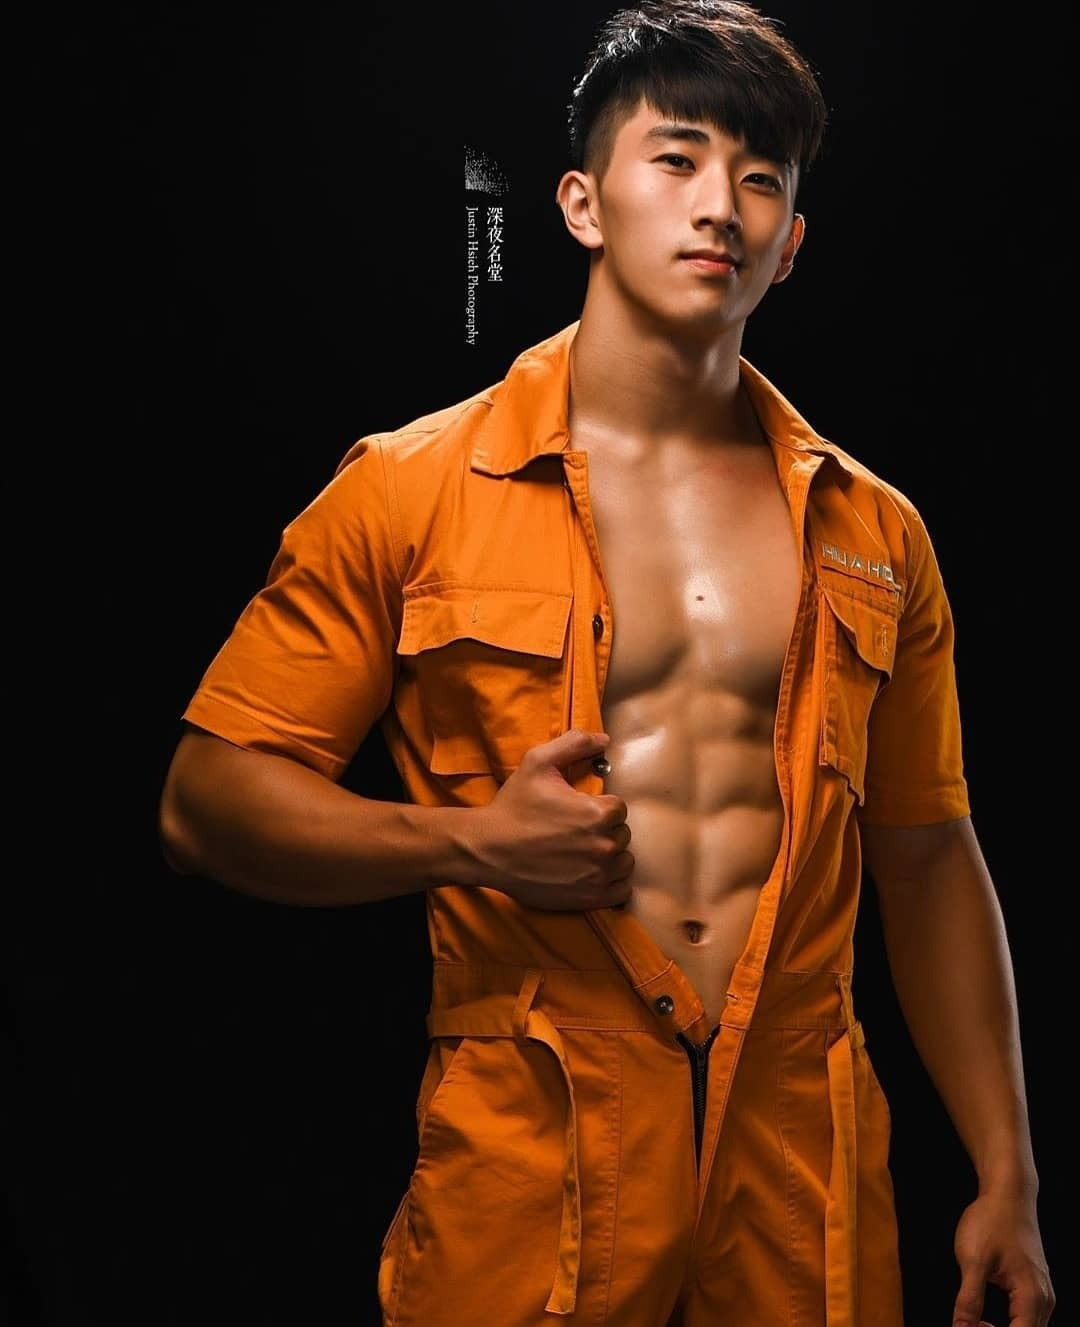 internet finds #overalls#coveralls#jumpsuit#workwear#work wear#cool#cool look#shirtless#hot#hot guy#buff#model#hot model